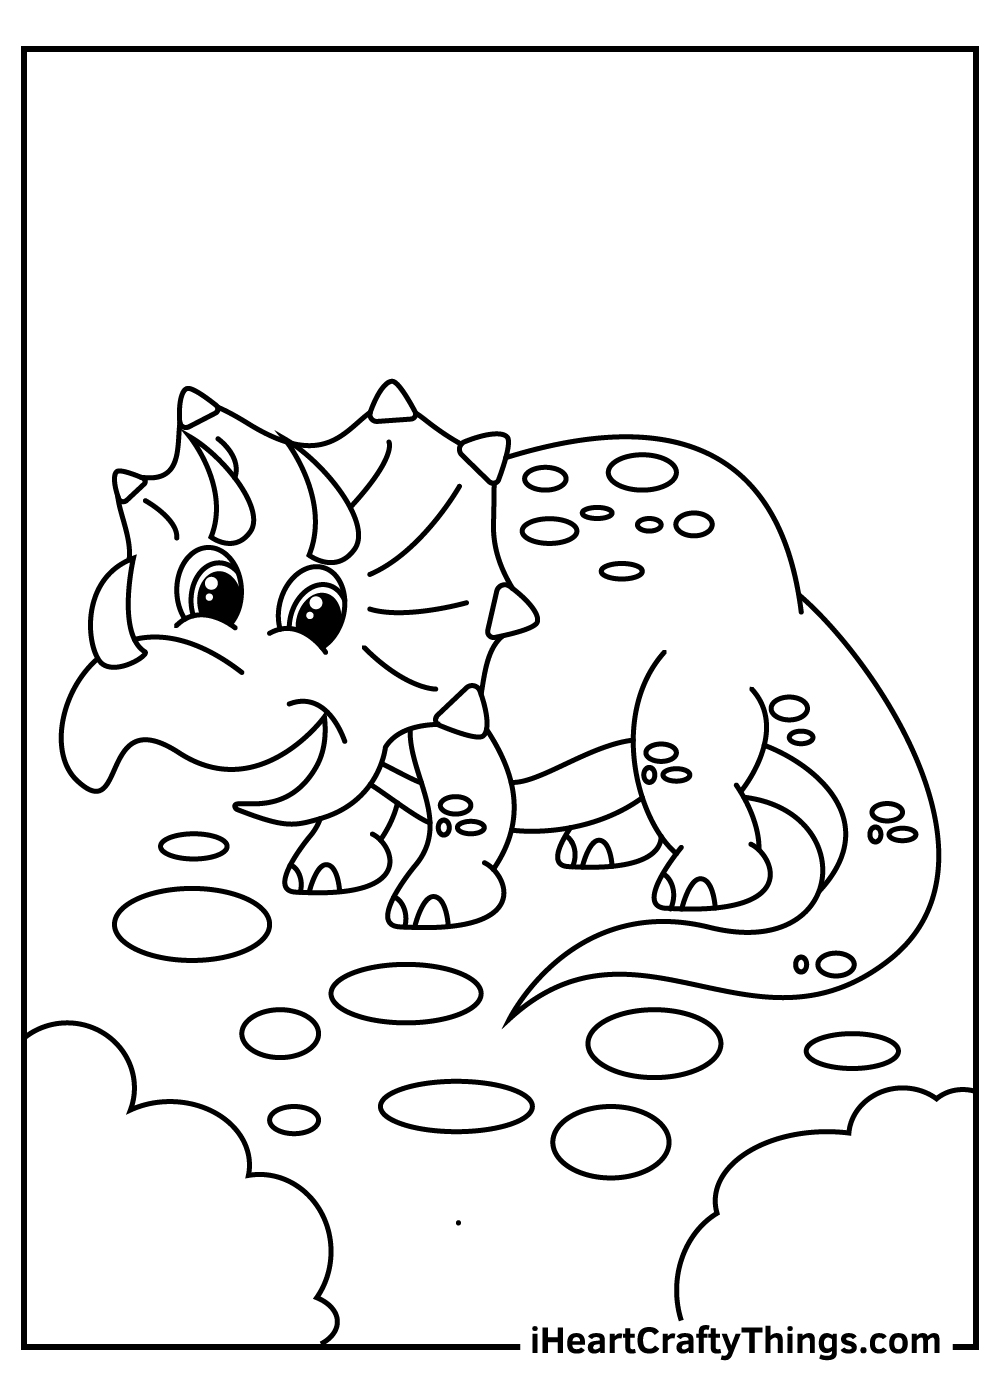 cute baby triceratops coloring pages for kids